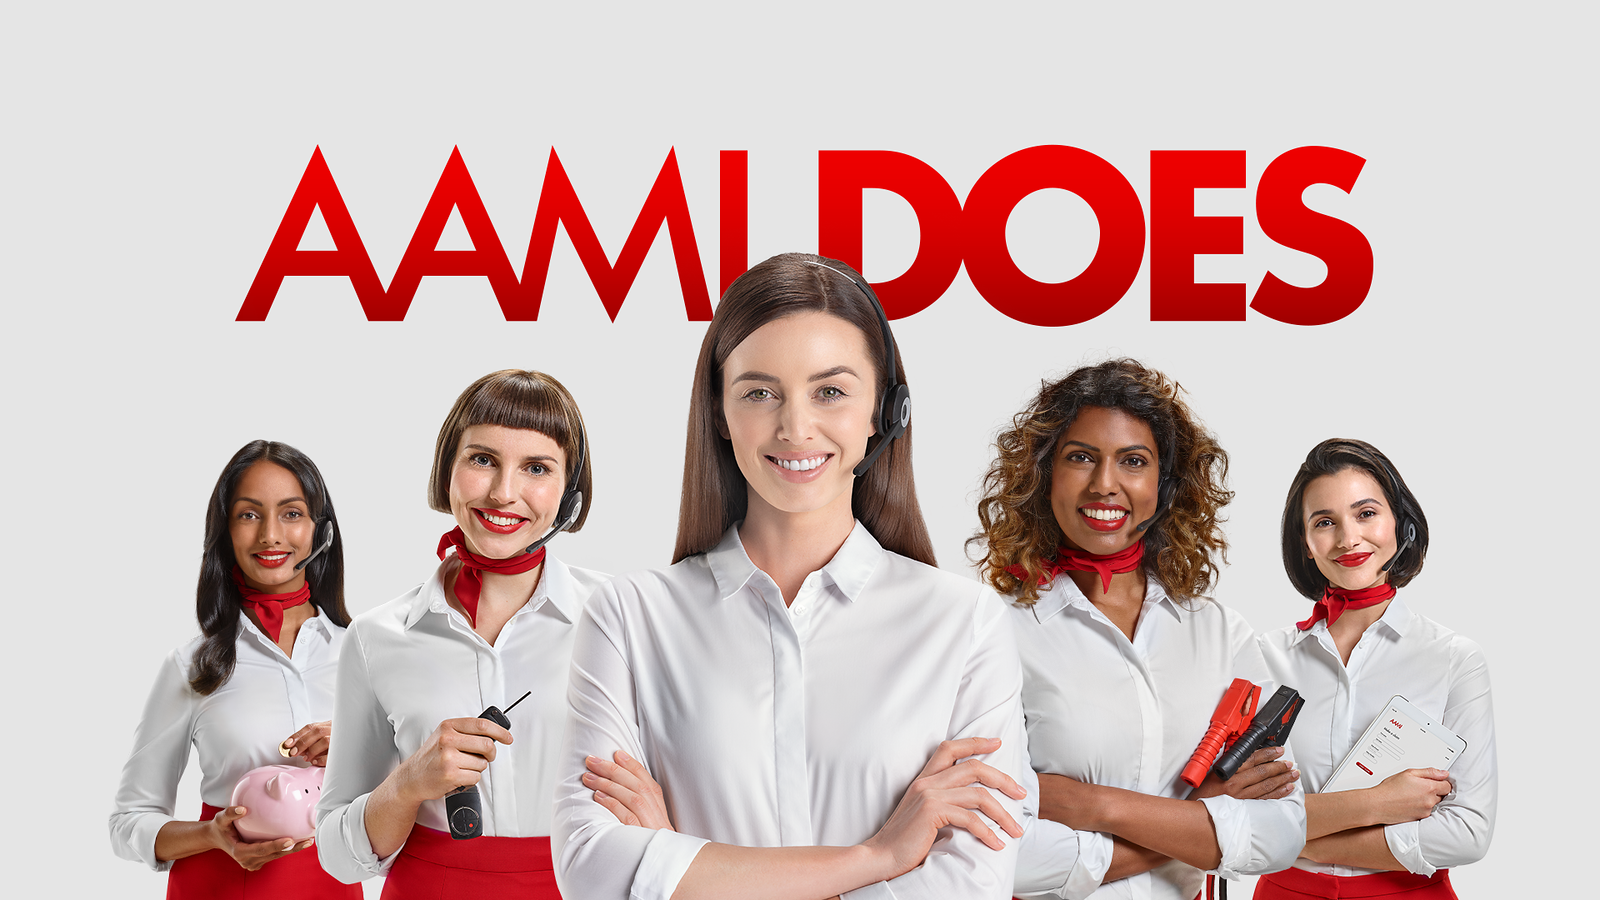 AAMI DOES campaign (photo credit: Ogilvy Melbourne/AAMI)